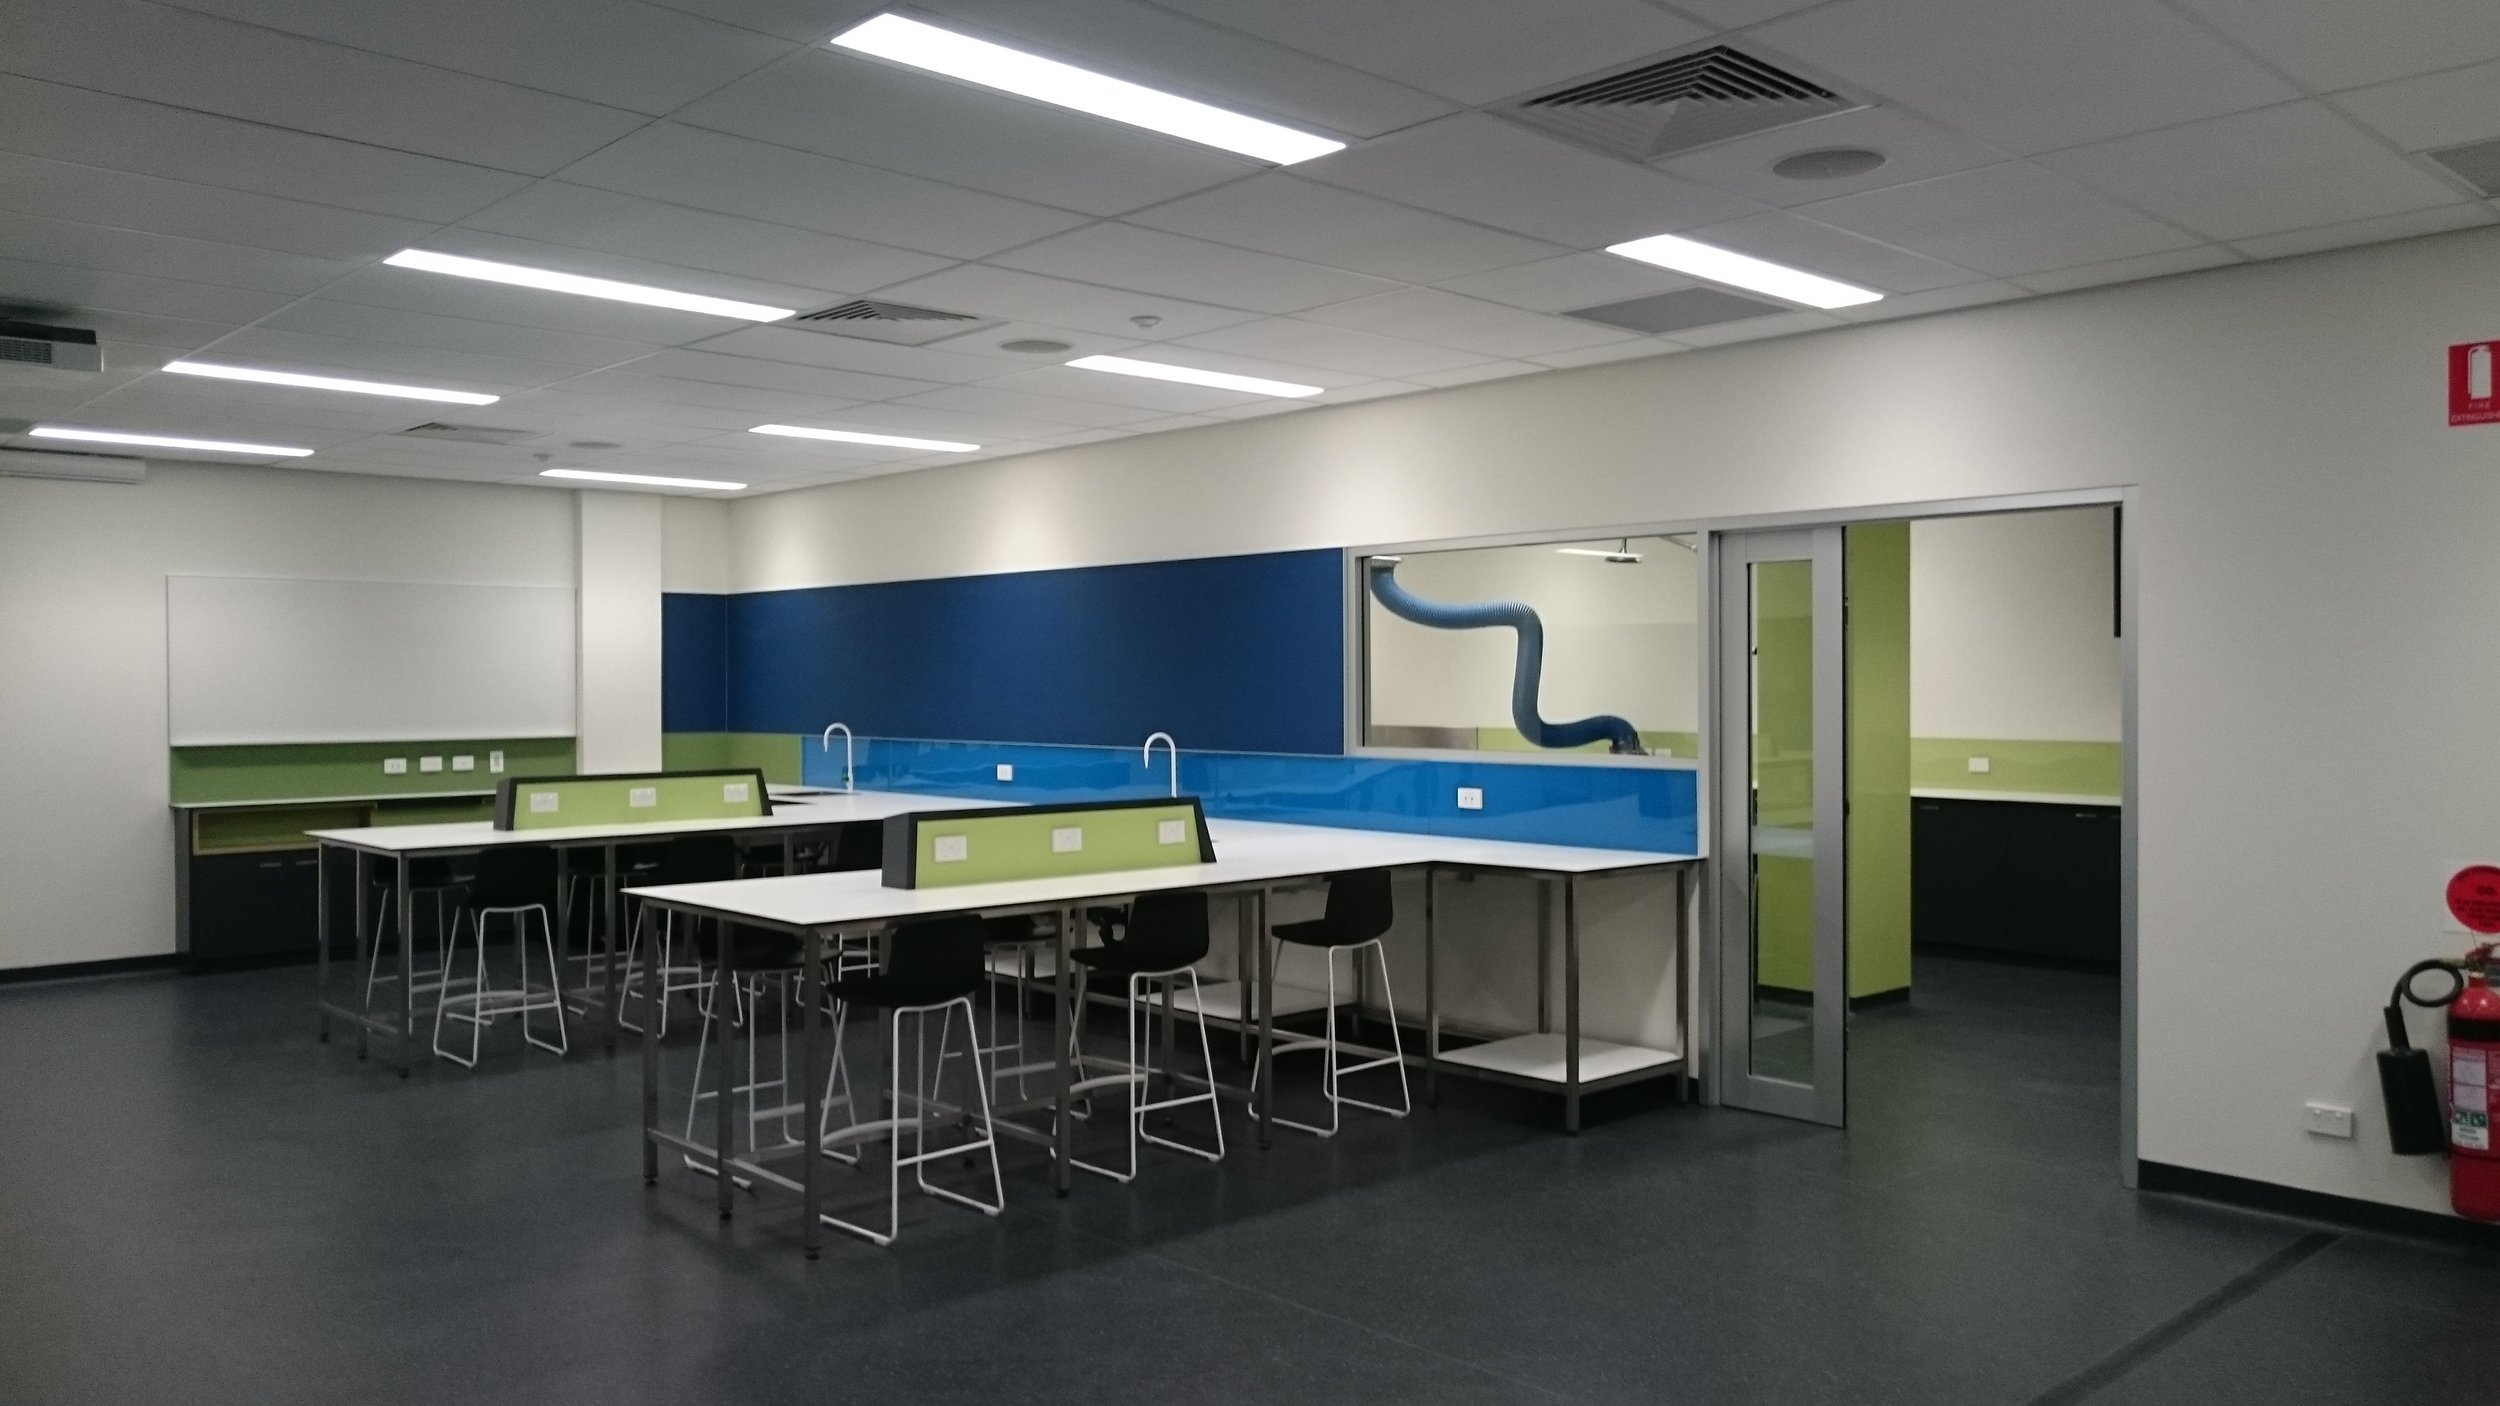 UniSA MLK | NBE Biology Laboratory   Services: BESTEC Contractor: Kennett Builders Photographer: Various  New university laboratory integrating practical and teaching areas. The new facility allows students to move seamlessly between the classroom and practical learning space.